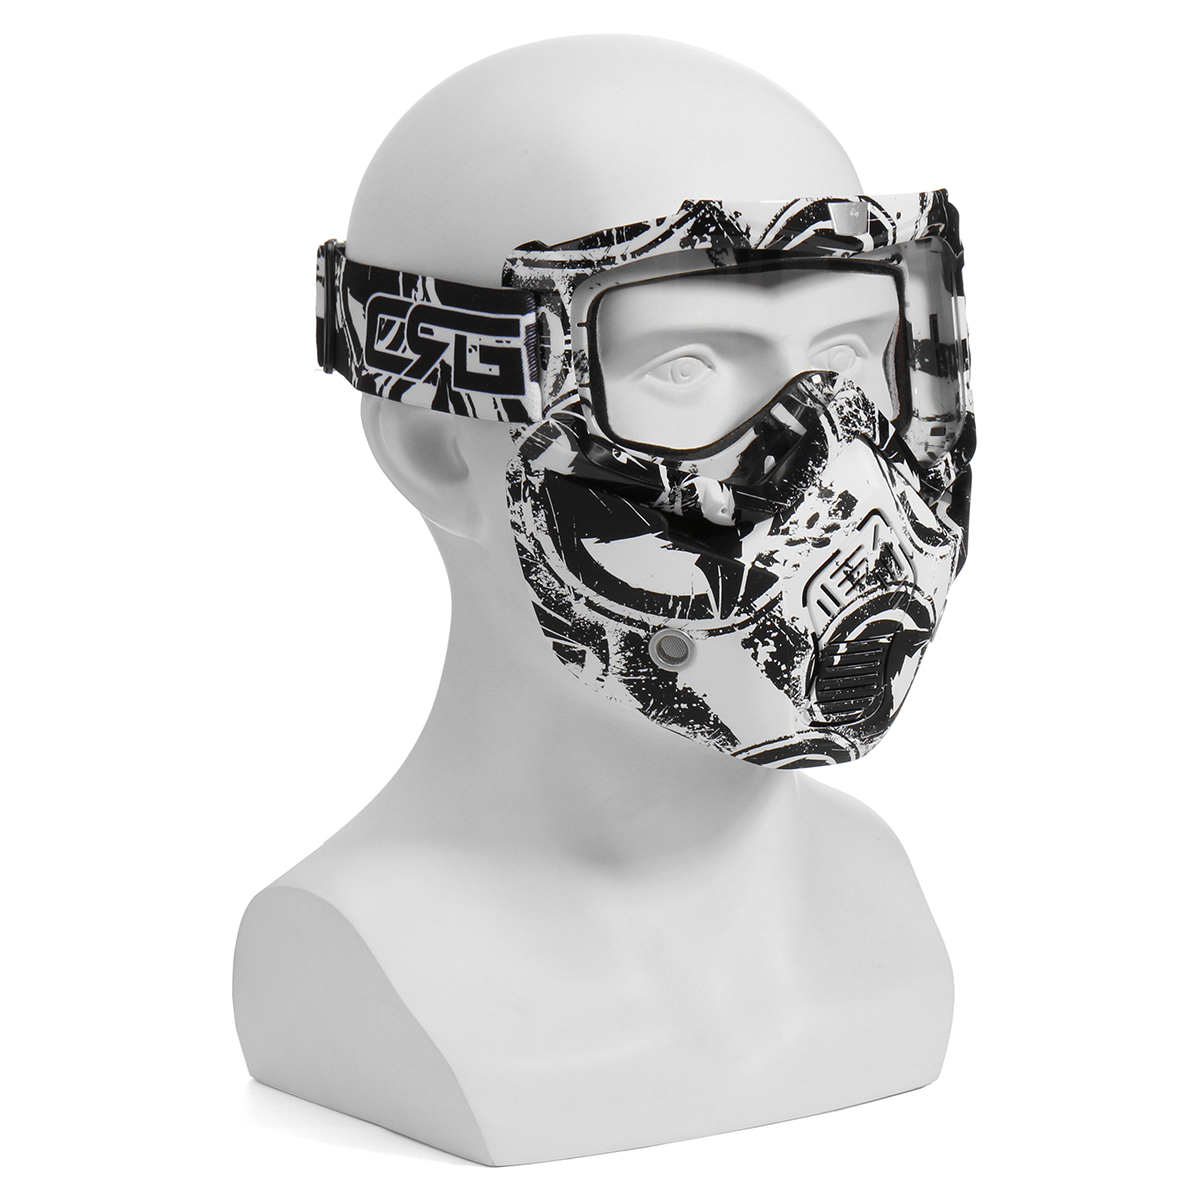 Removable Detachable Modular Full Face Mask Shield Goggles ATV Motorcycle Helmet